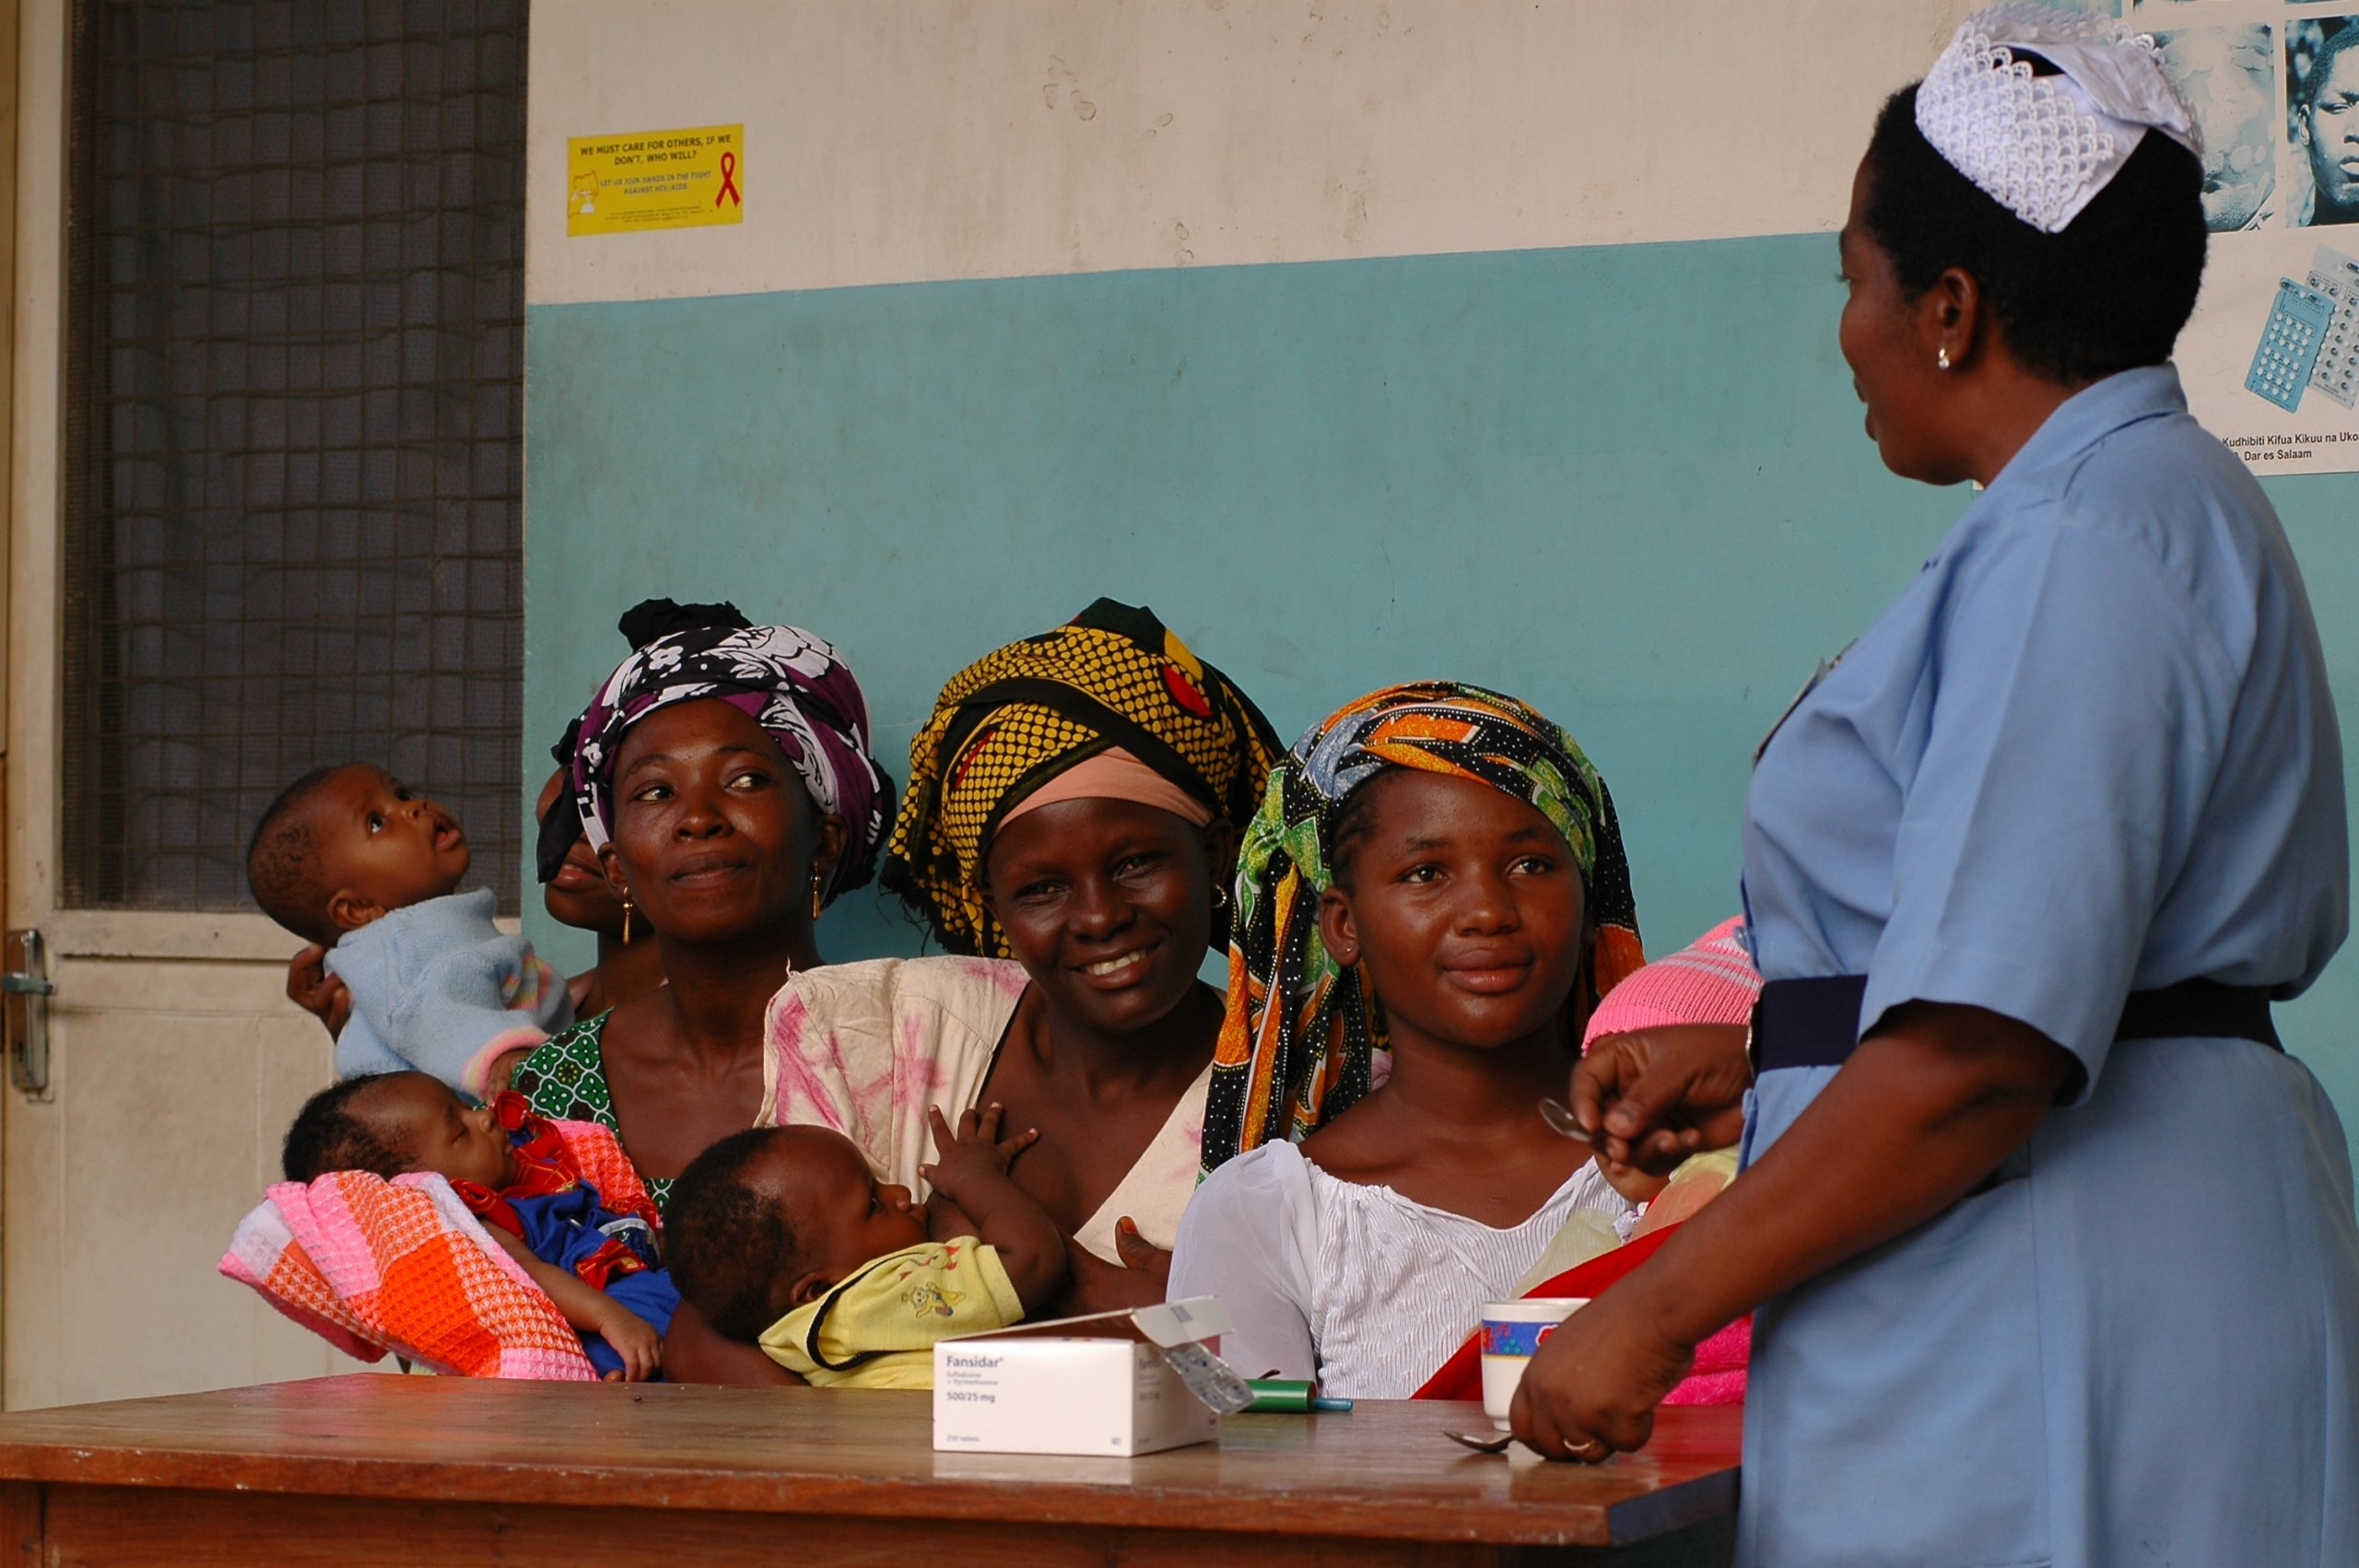 Mothers and children at health facility. Image courtesy of Dr Schellenberg